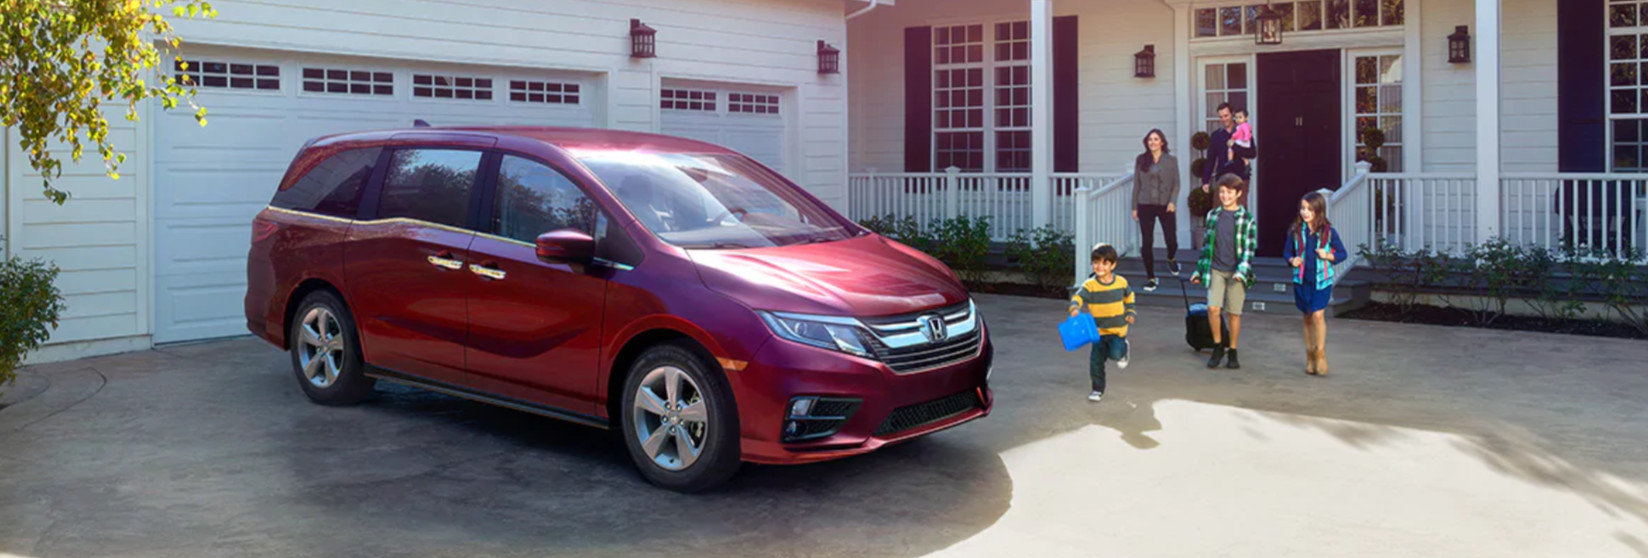 2020 Honda Odyssey Leasing near The Woodlands, TX